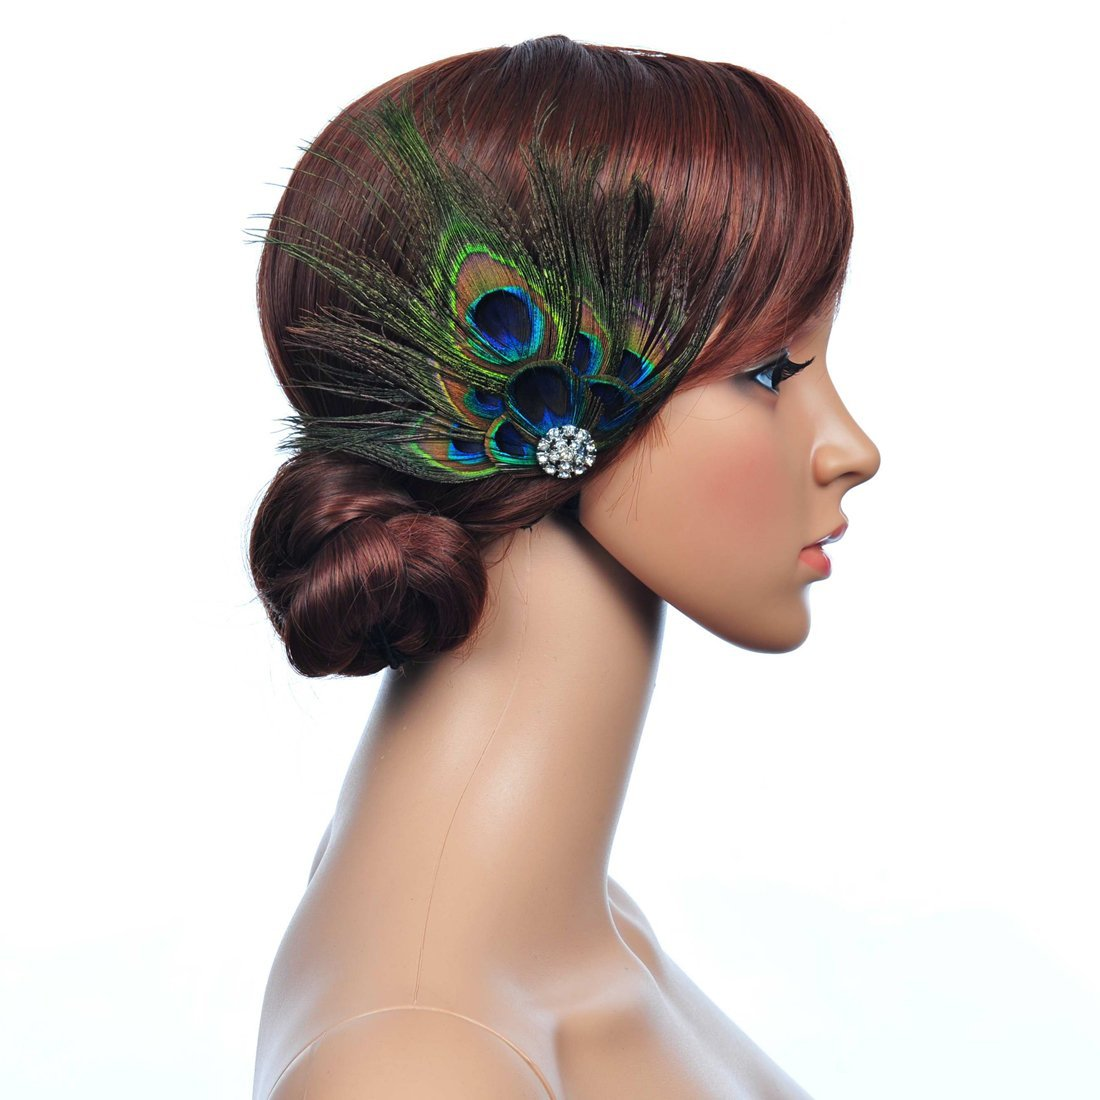 Remedios Black Peacock Feather Wedding Hair Accessory Bridal Hair Clip LWCAFS130241